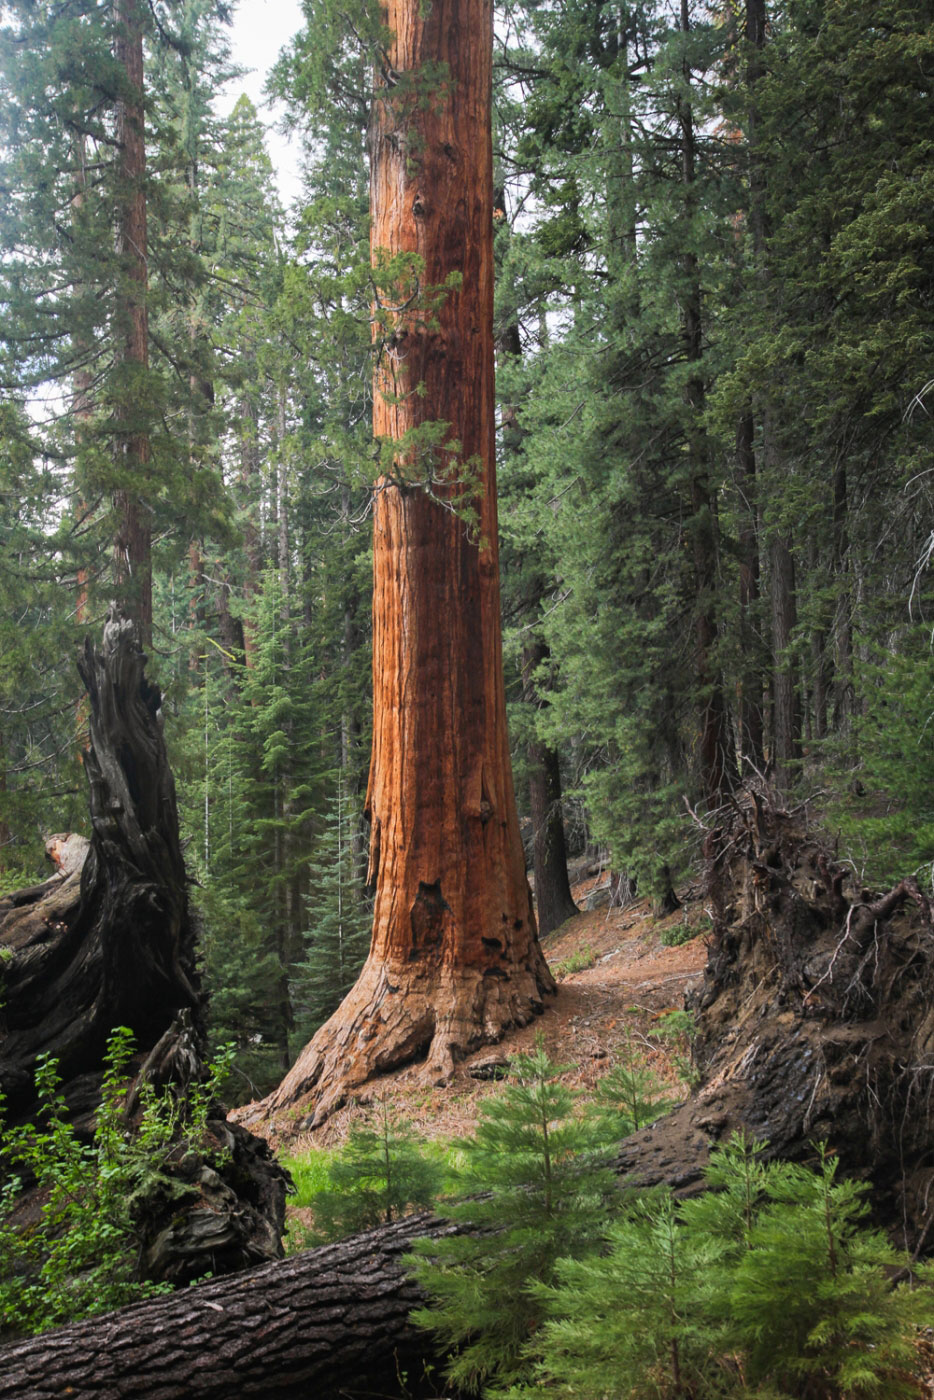 sequoia national park asian girl personals My main interests are mojave desert, las vegas, death valley/yosemite/sequoia national preserve (depending on the weather), san fransisco, monterey, big sur and los angeles, but i am flexible with sun, 07 oct 2018 12:35:44 +0000.